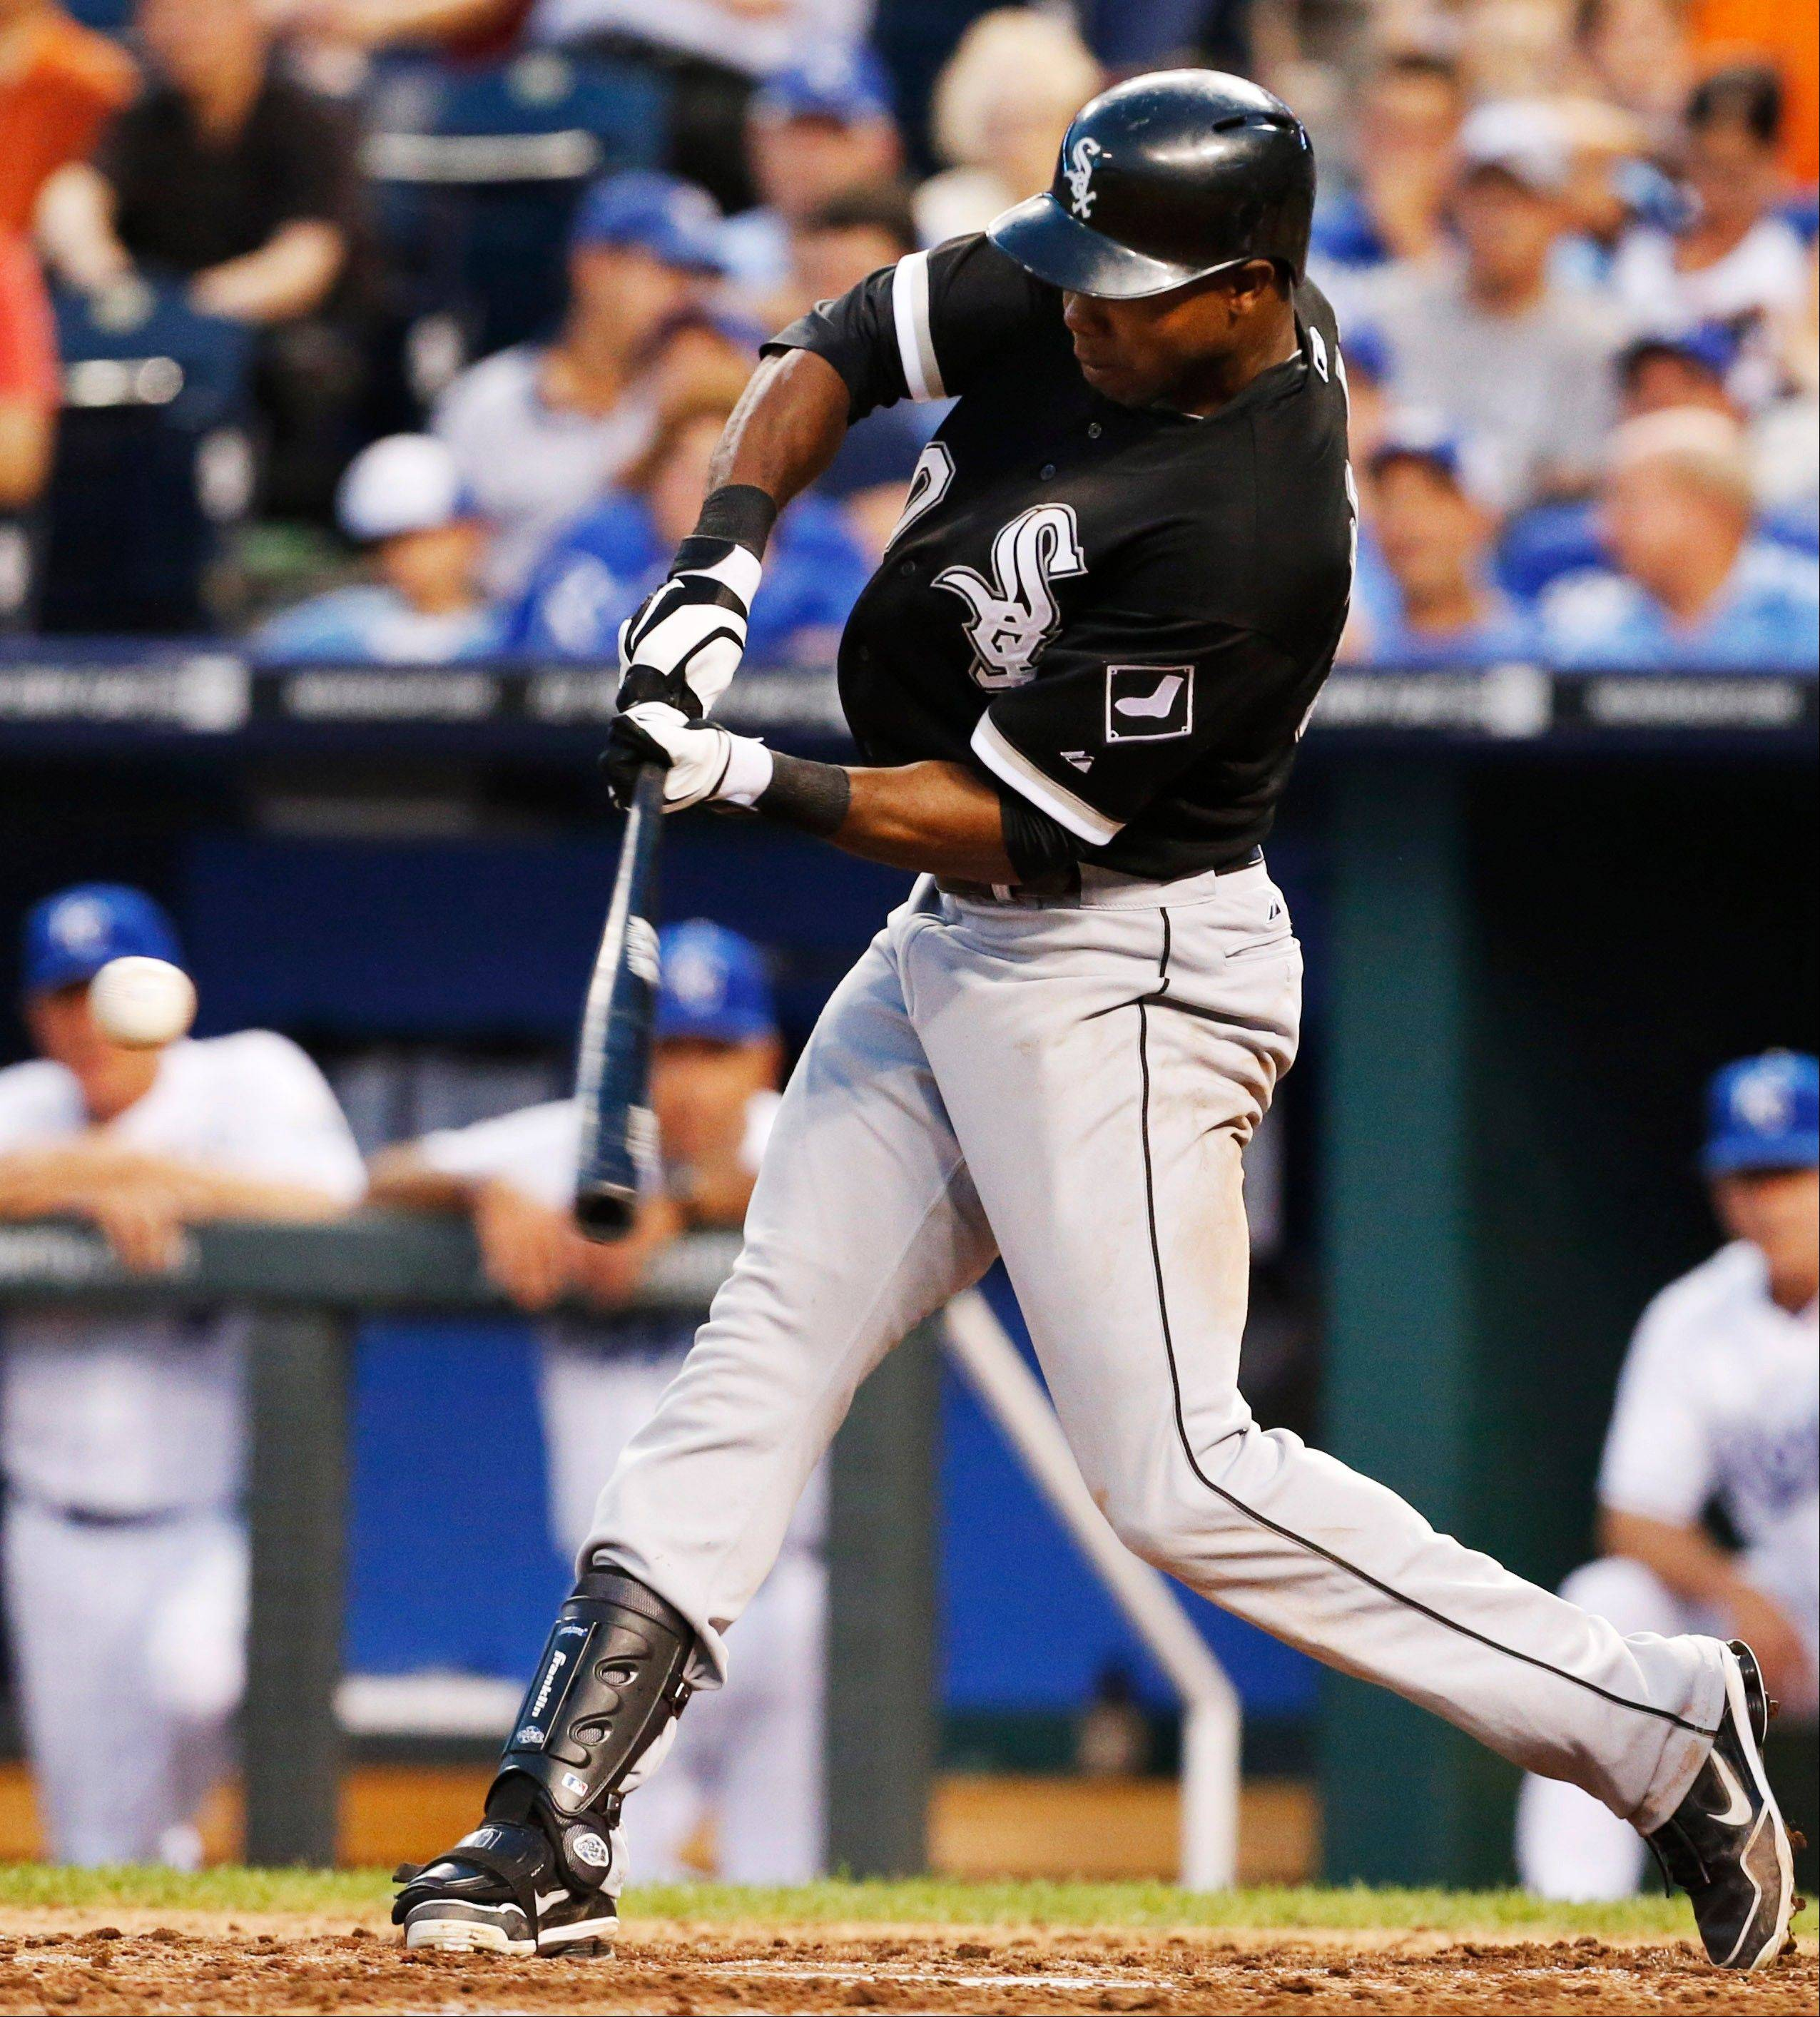 Chicago White Sox's Alejandro De Aza hits a two-run home run off Kansas City Royals relief pitcher Bruce Chen during the sixth inning of a baseball game at Kauffman Stadium in Kansas City, Mo., Friday, June 21, 2013. (AP Photo/Orlin Wagner)